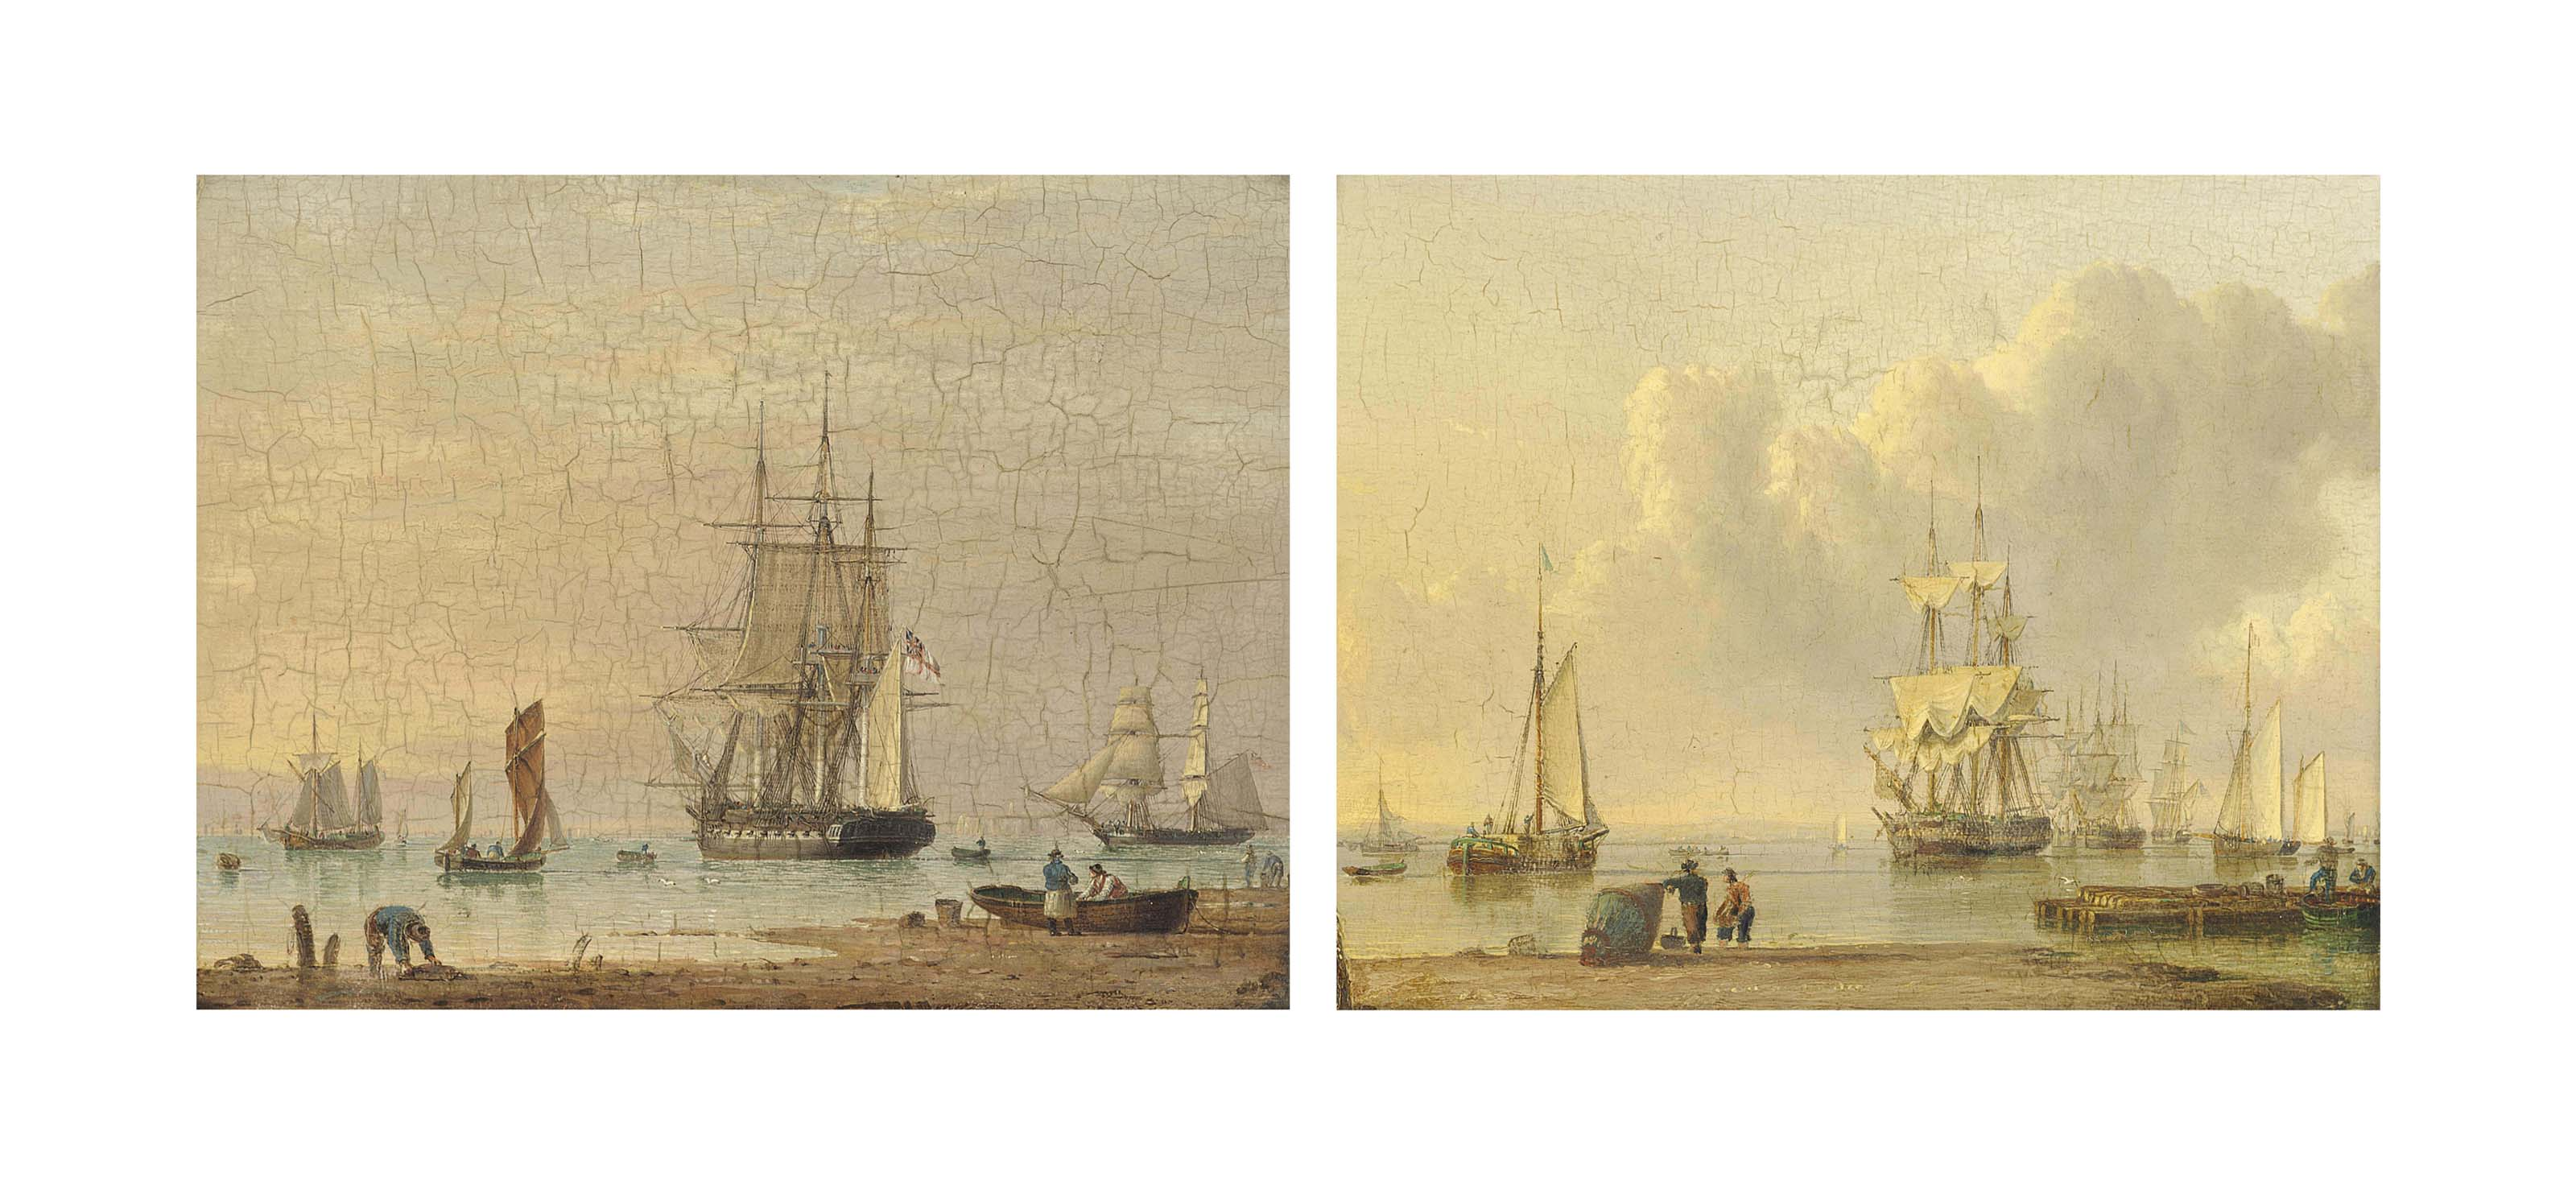 A Royal Navy frigate drifting from her anchorage on the Humber; and Shipping becalmed on the Humber (both illustrated)